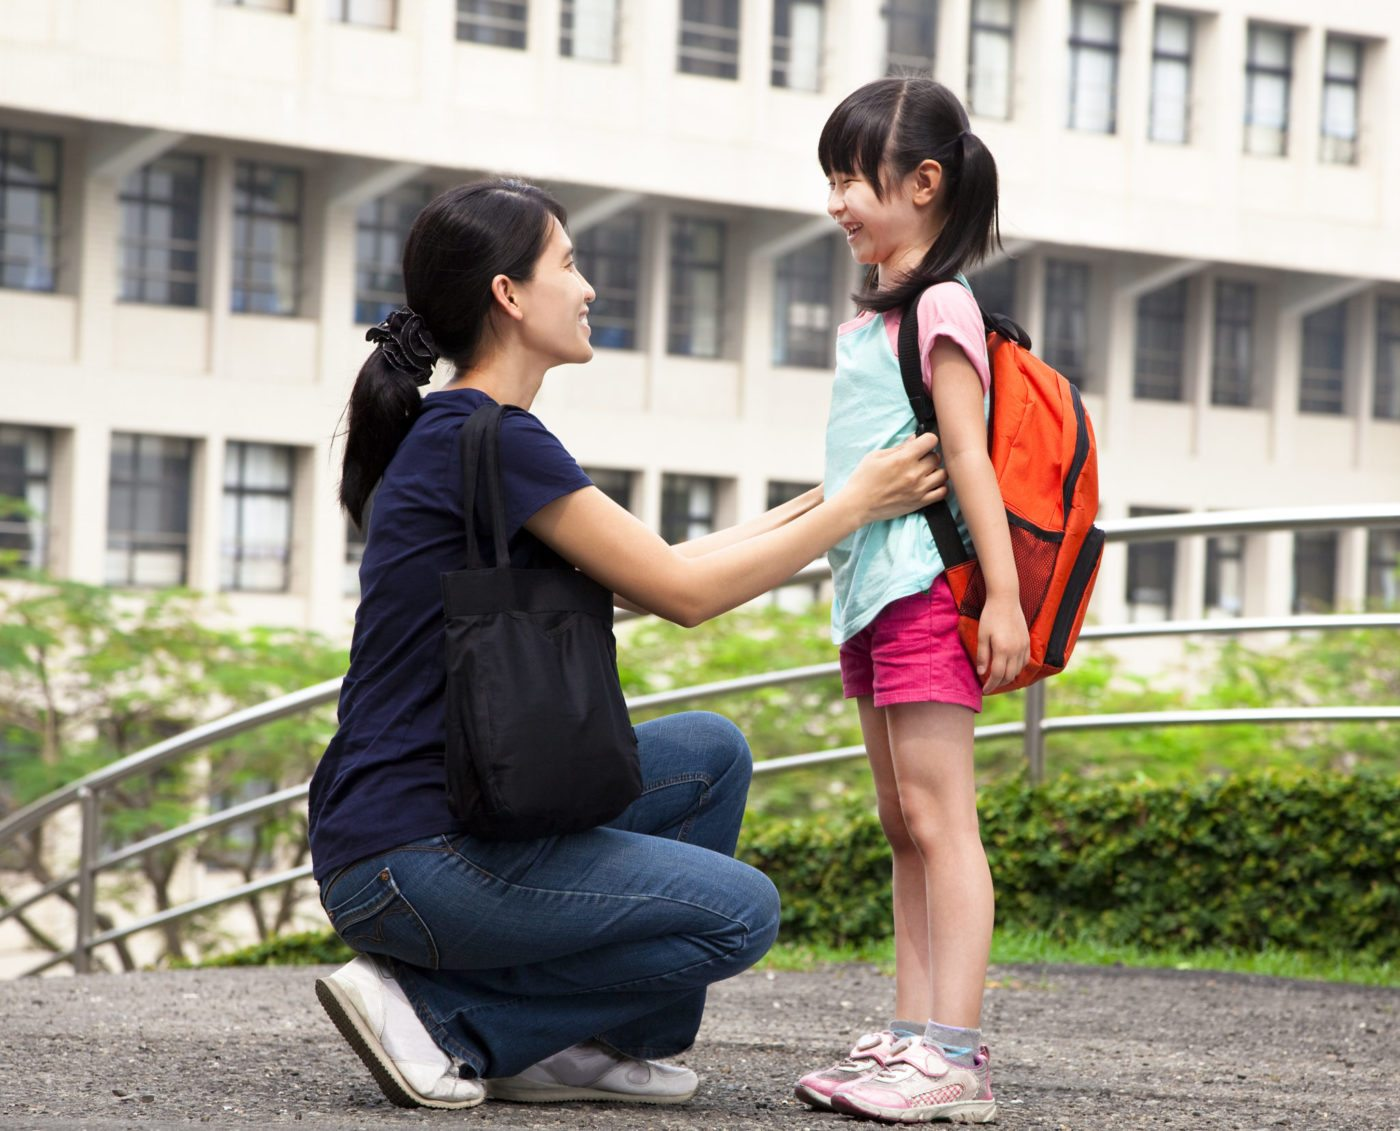 Survey confirms homebuyers willing to pay premium to be near preferred schools